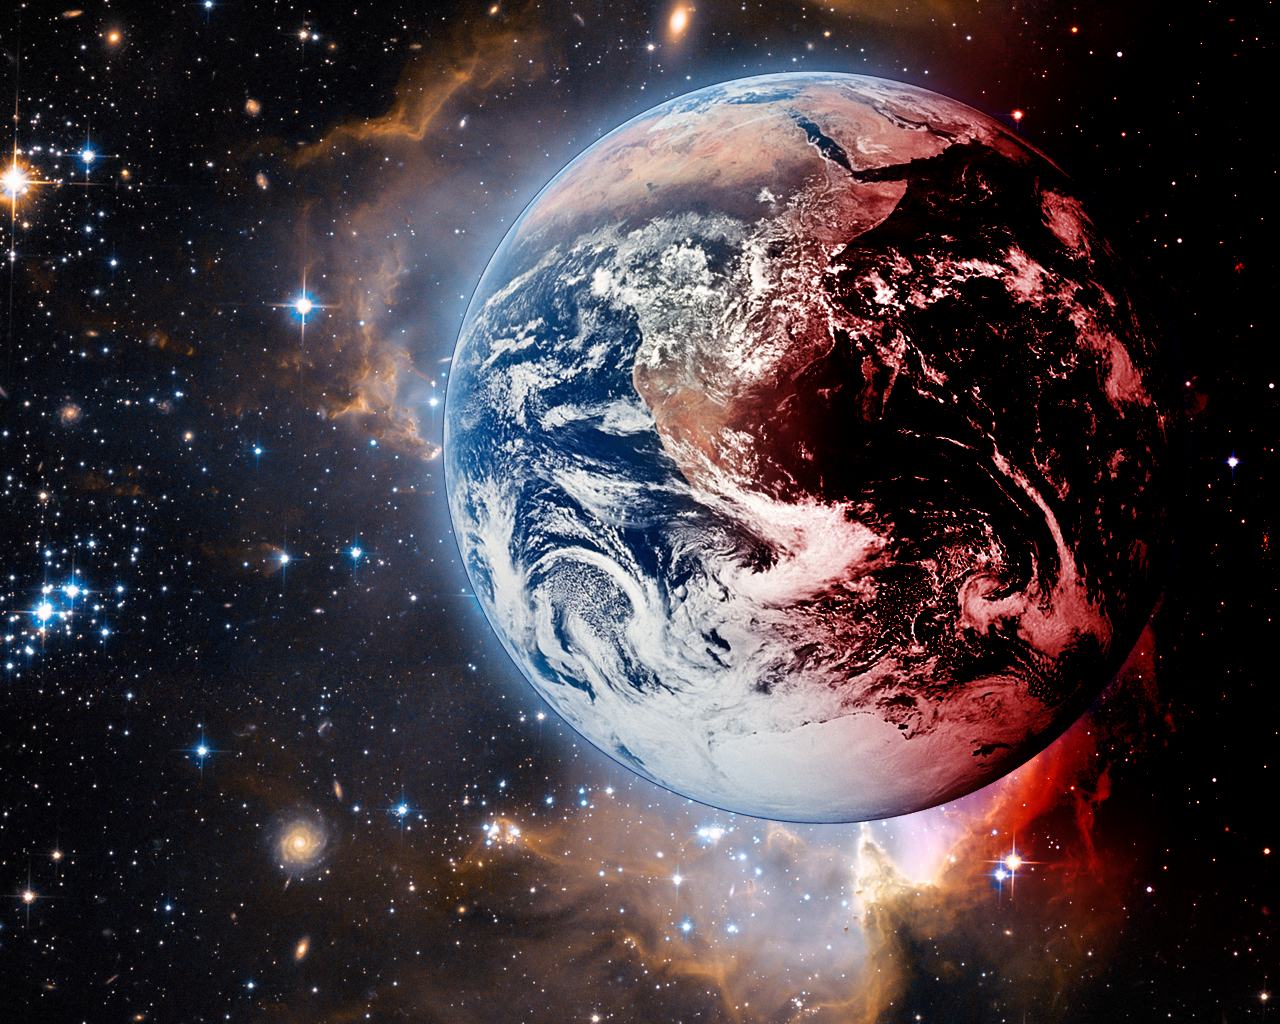 Wallpaper Earth Above Space Hd Space 6408: TechnoCrazed - Part 4